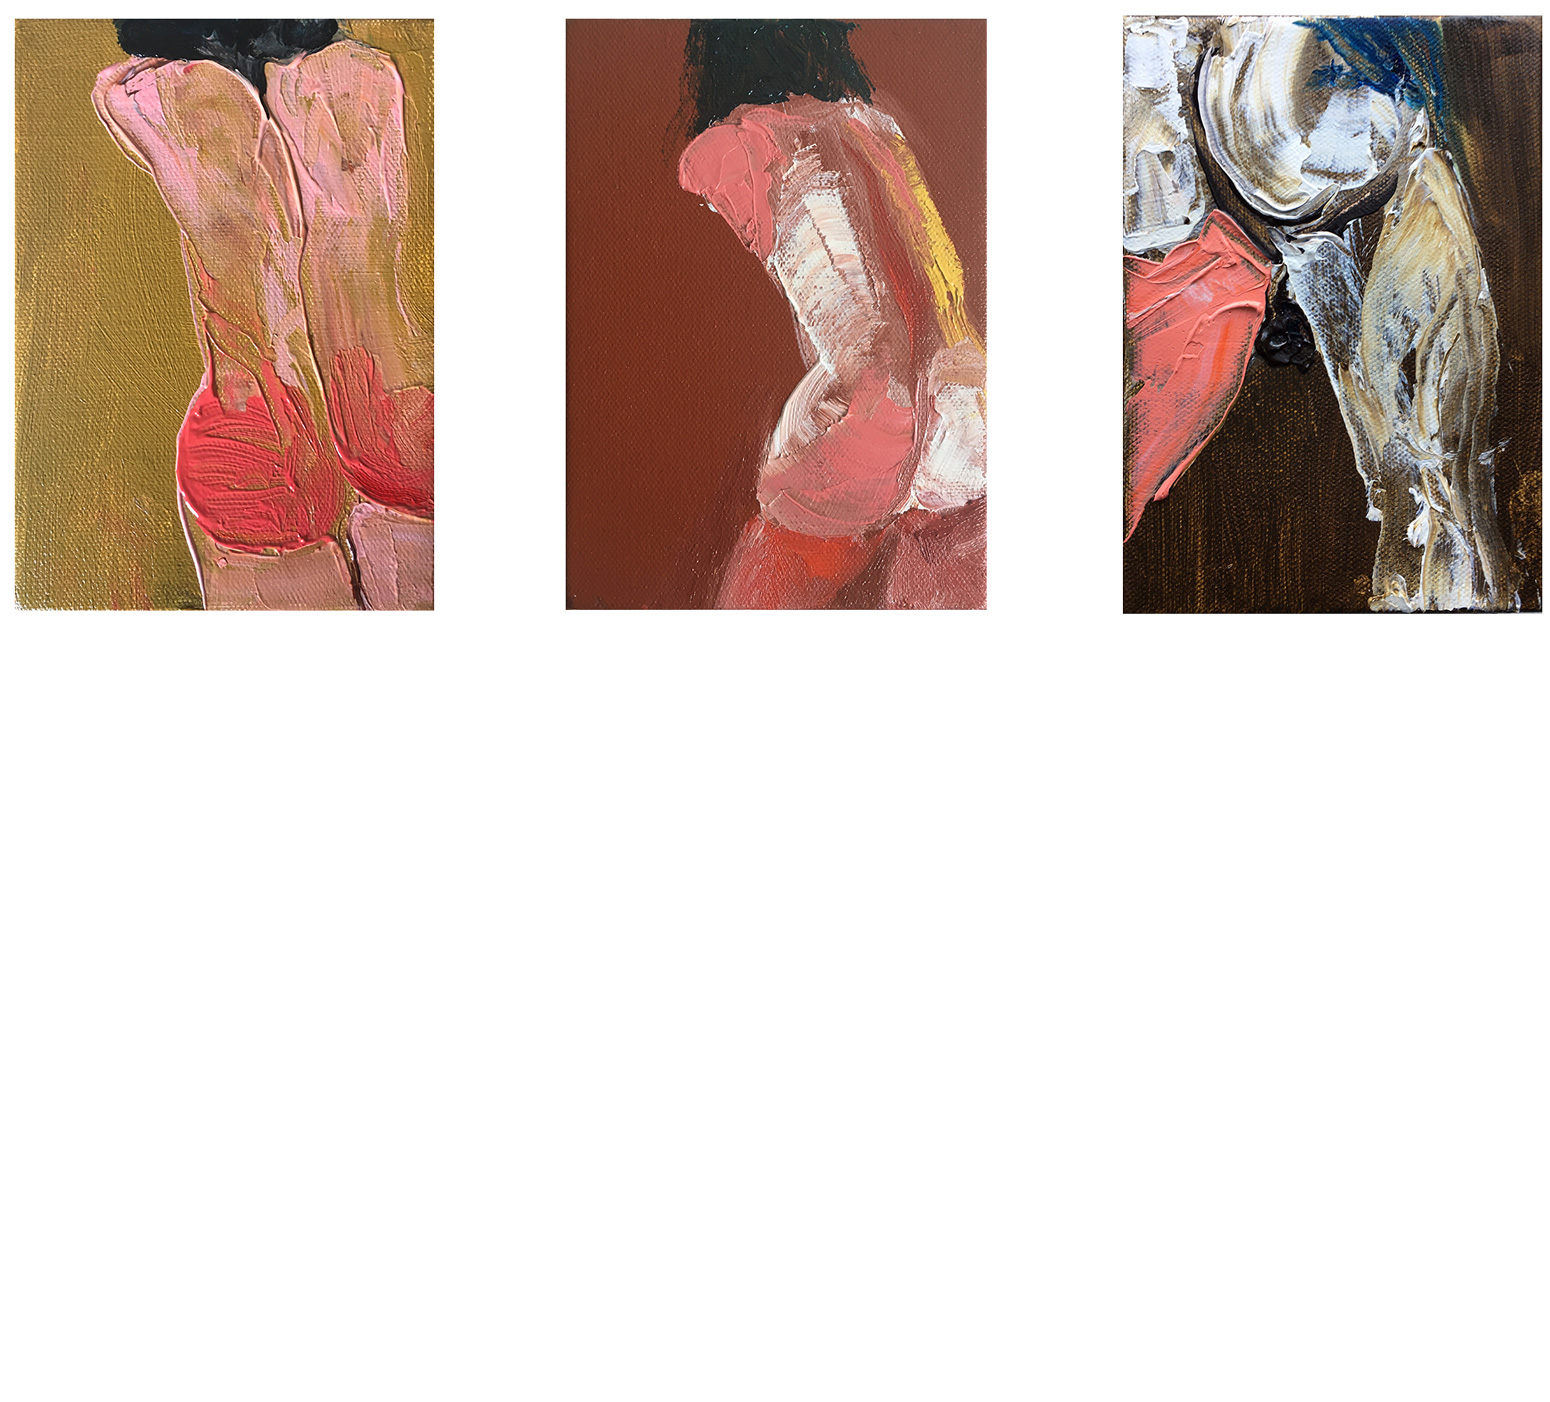 (left-to-right)   Events in the Body: Torso in Yellow Ochre Light    Events in the Body: Torso in English Deep Red*    Events in the Body: Torso in Raw Umber   2018 Oil on canvas 7x5 in.   * Sold